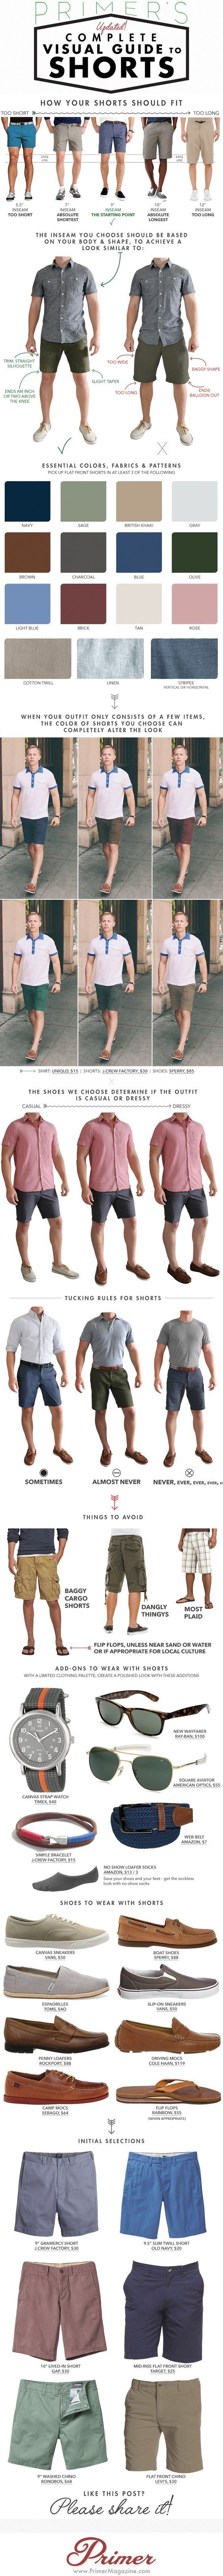 Stay cool and look smart this summer with our complete visual guide for all things shorts, covering fit and fabric to shoes and accessories.: